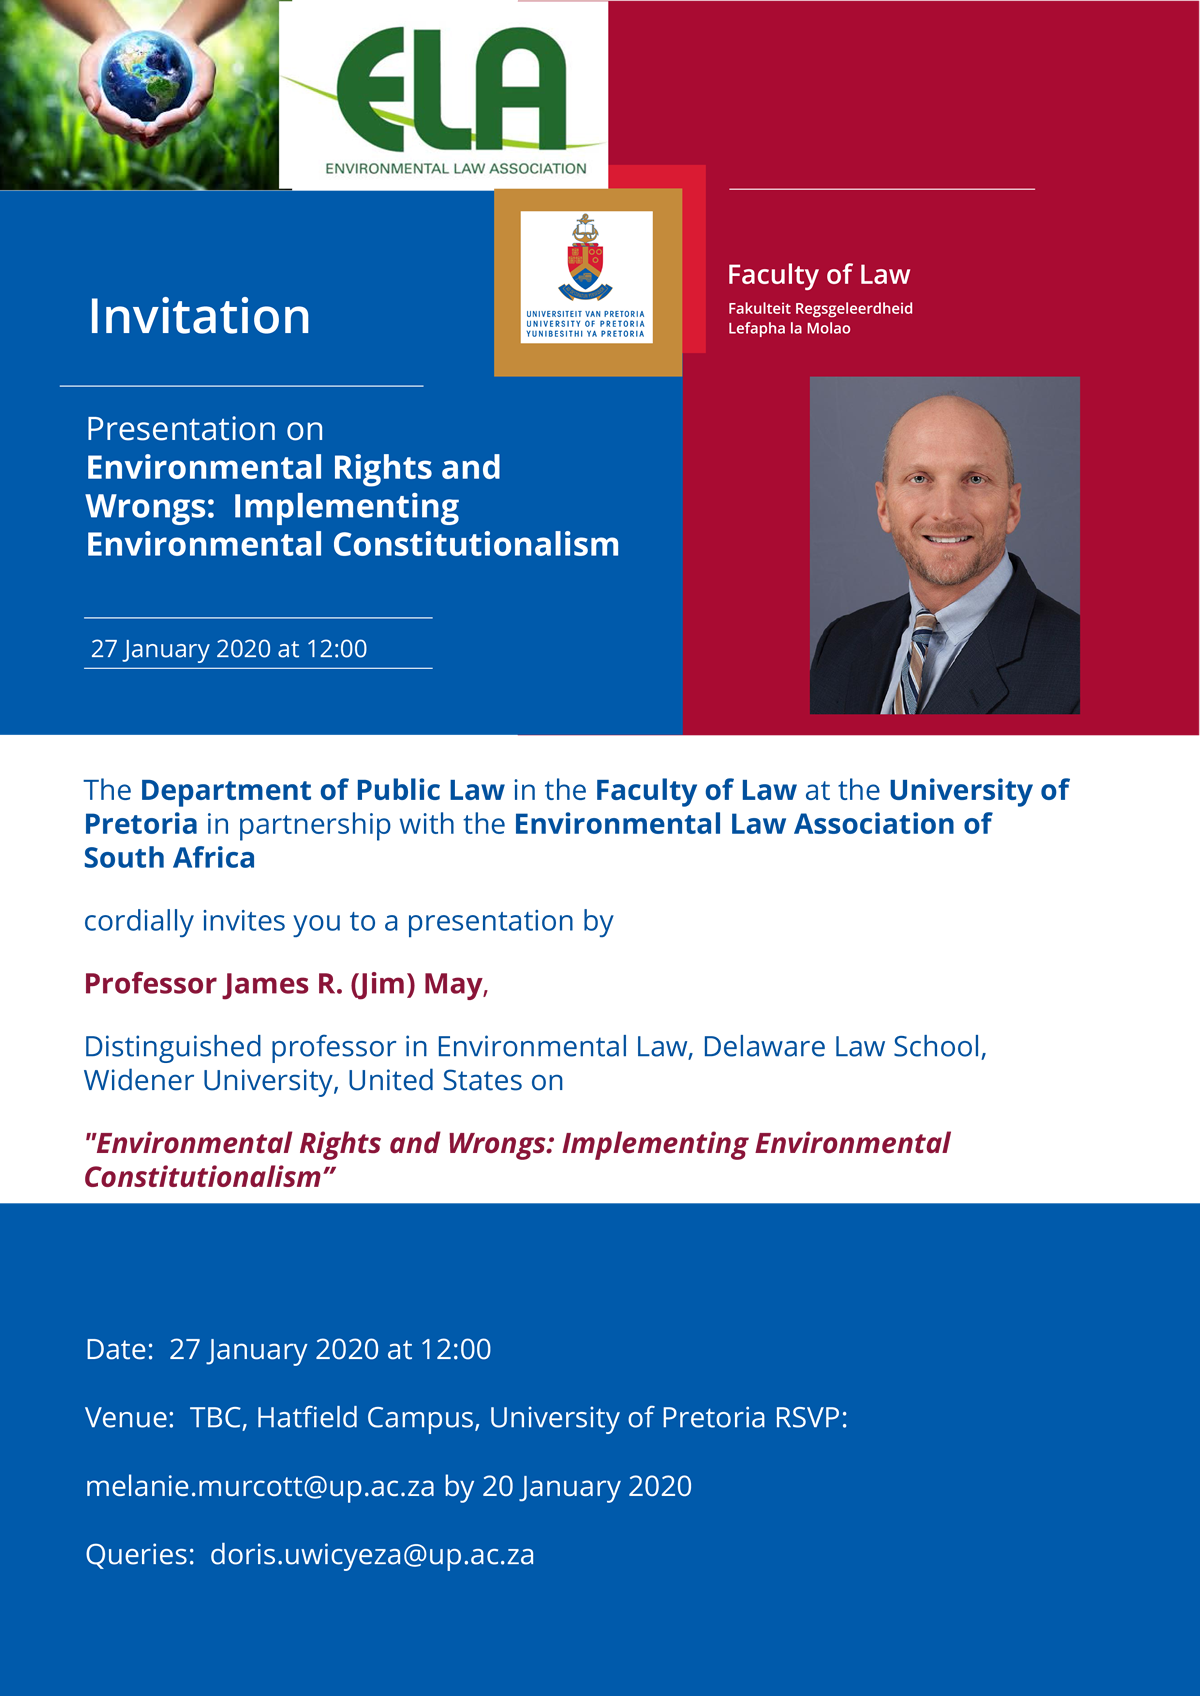 Presentation on Environmental Rights and Wrongs: Implementing Environmental Constitutionalism